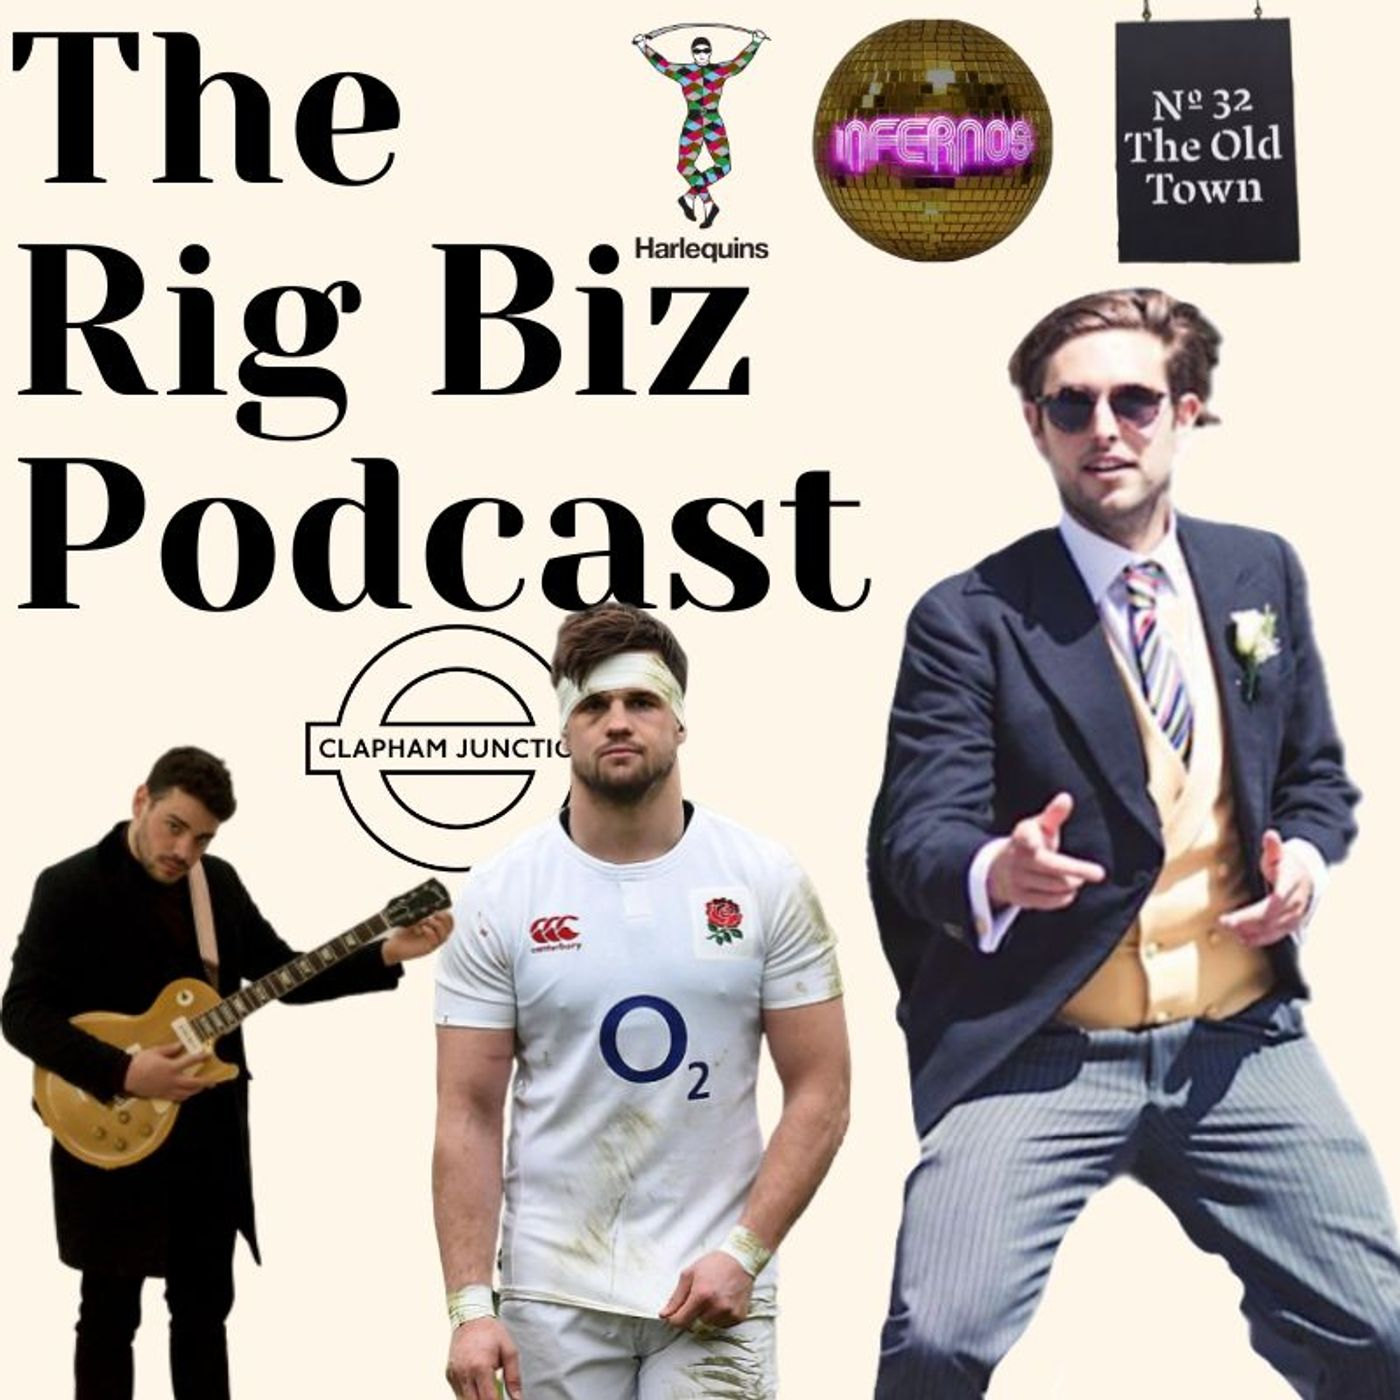 The Rig Biz - Episode 8 - Jack Clifford Interview - Archie's Twickers Day Out - Coronavirus Advice